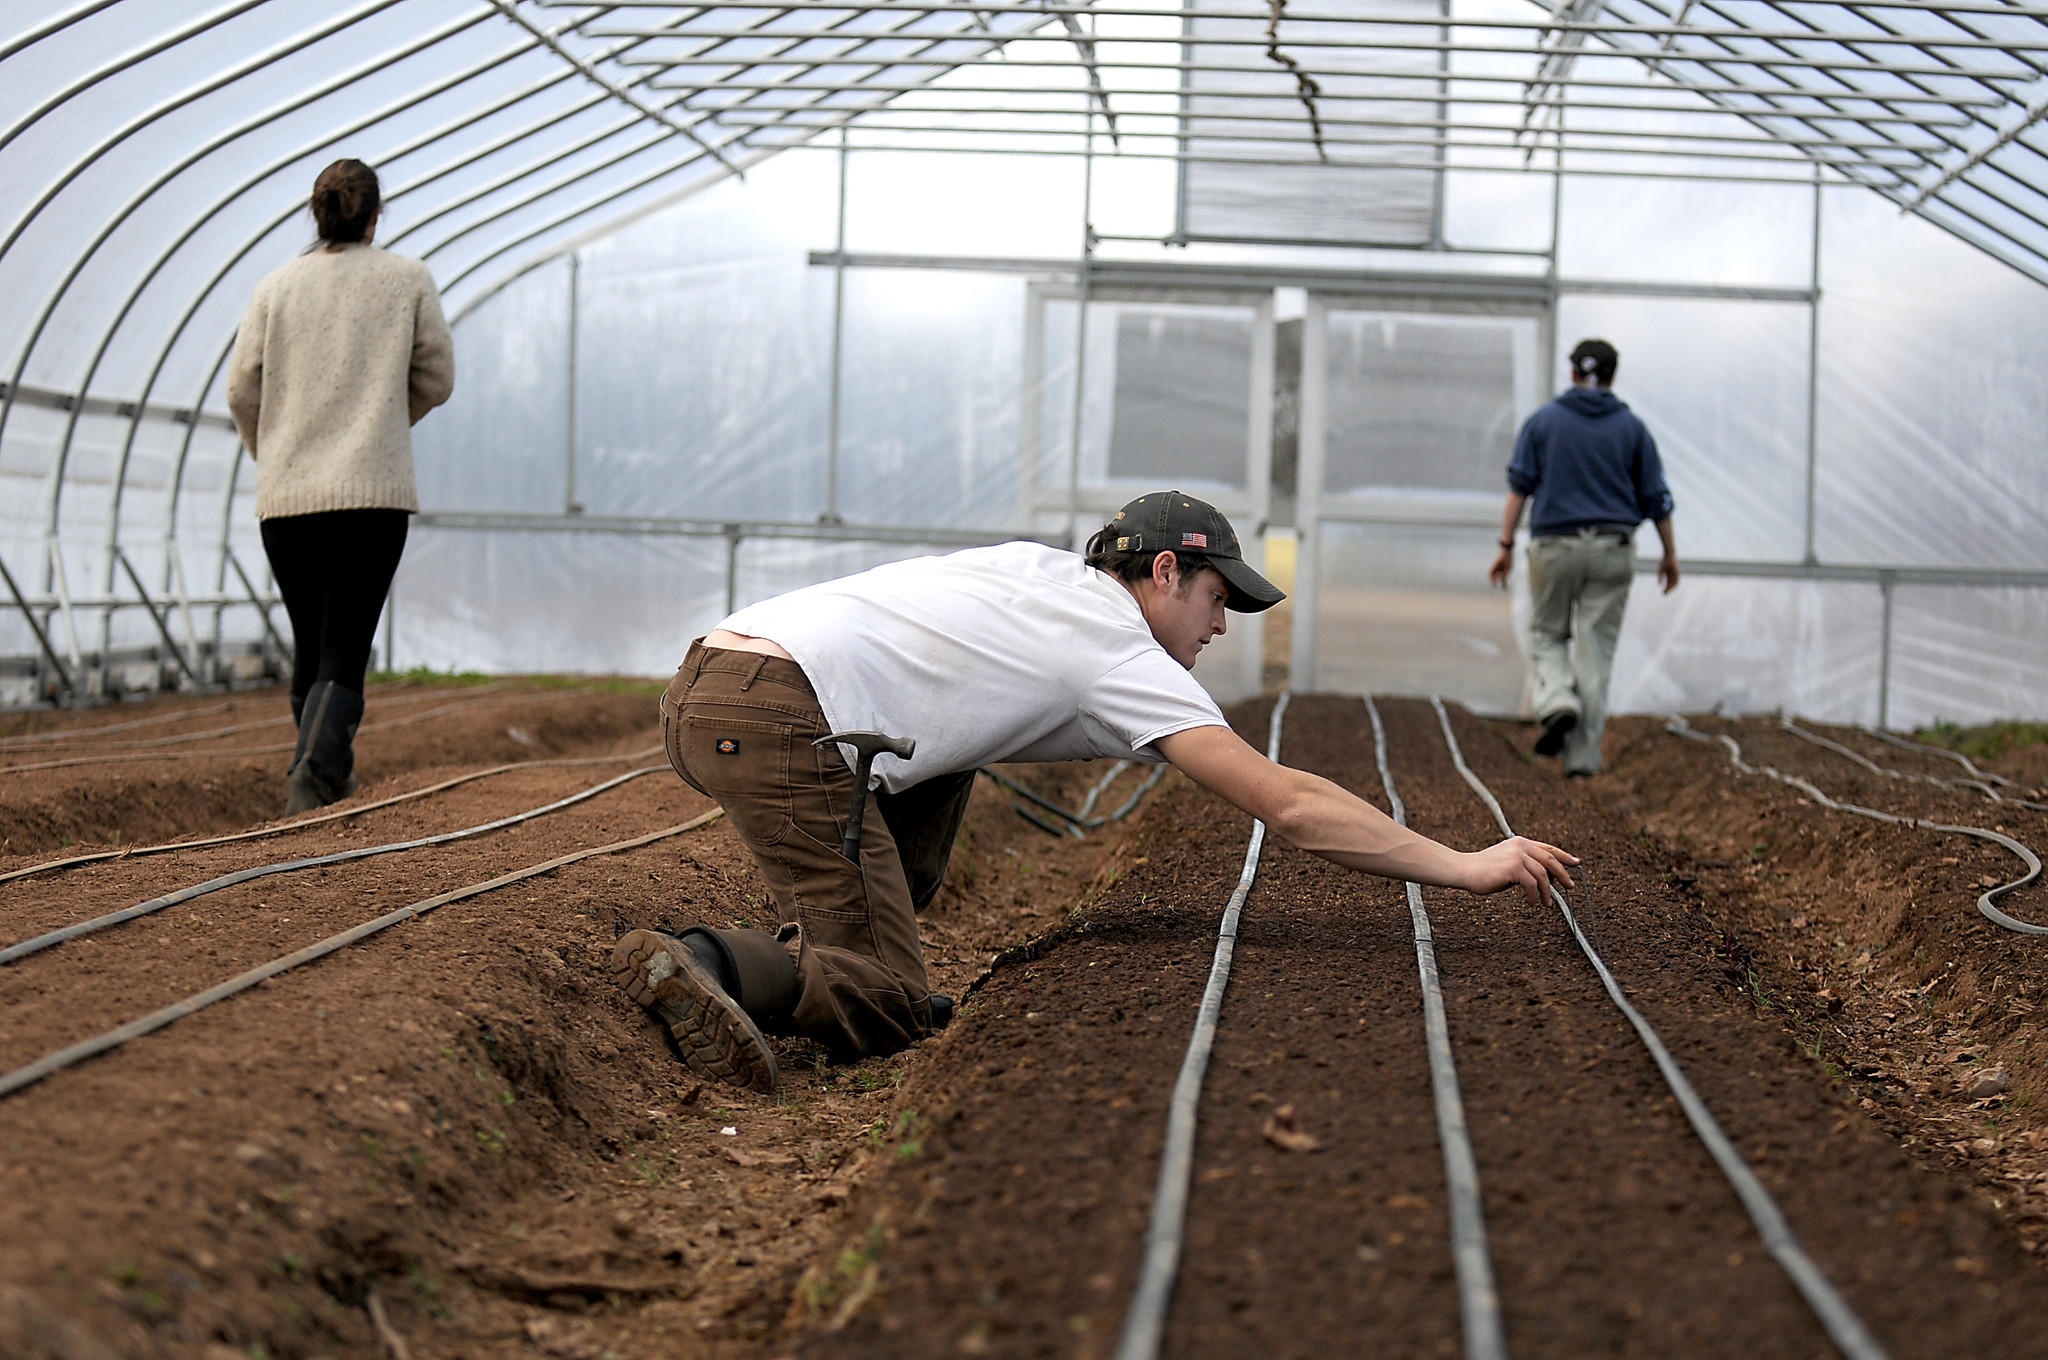 Andy Billipp reaches over to place a retaining clip into the soil to hold the irrigation lines he just finished connecting in one of the greenhouses at Eddy Farm in Newington he runs with his wife Haley.